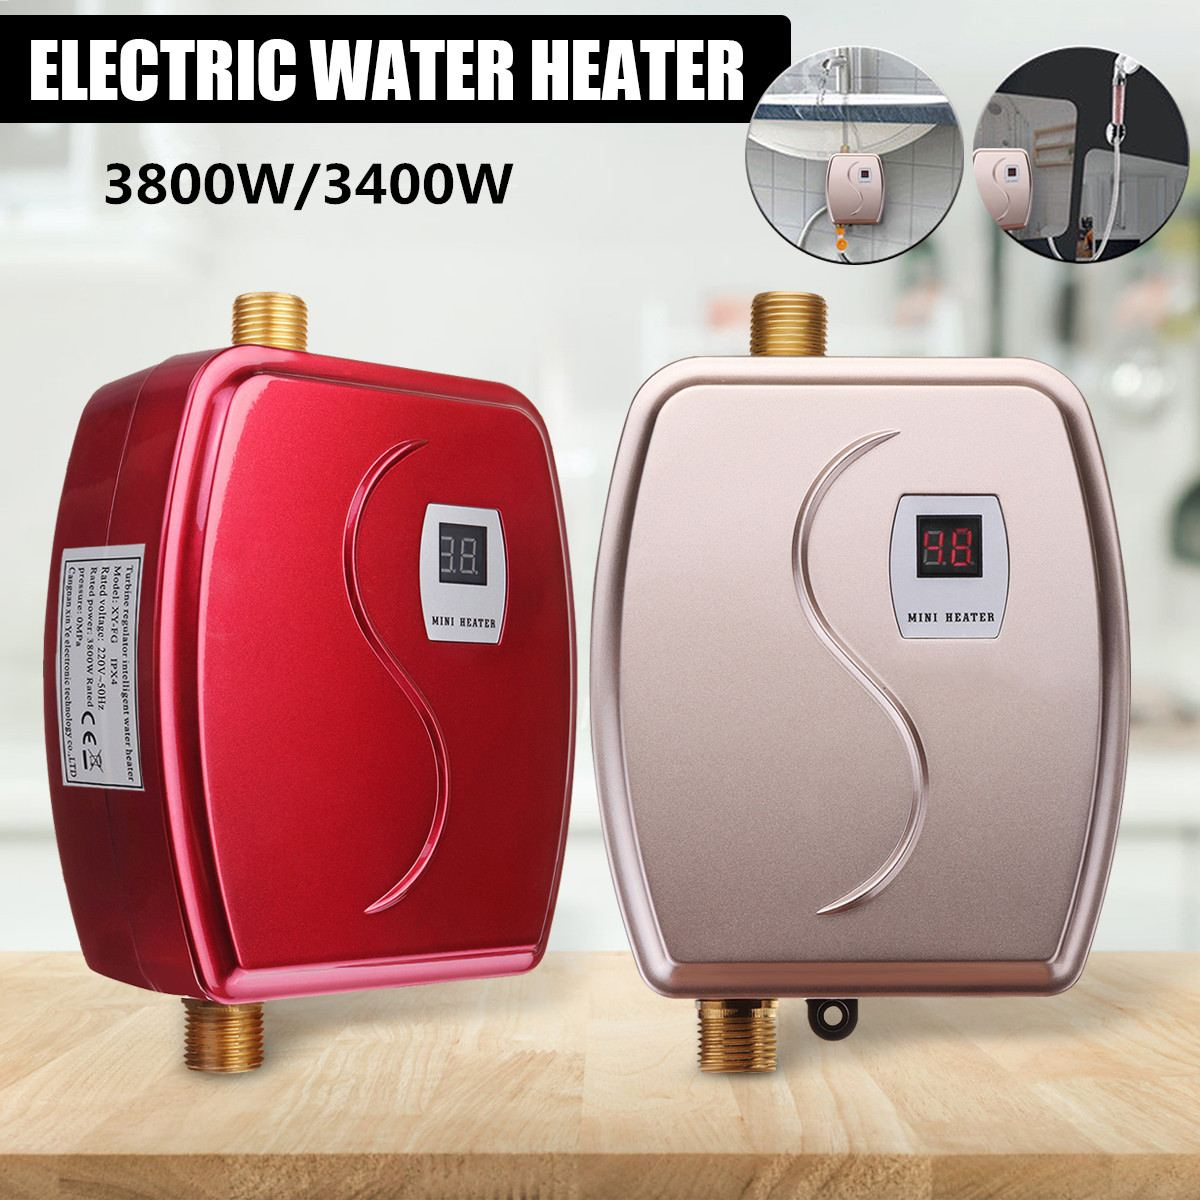 3800W/3400W Electric Water Heater Instant Tankless Water Heater 110V/220V 3.8KW Temperature Display Heating Shower Universal